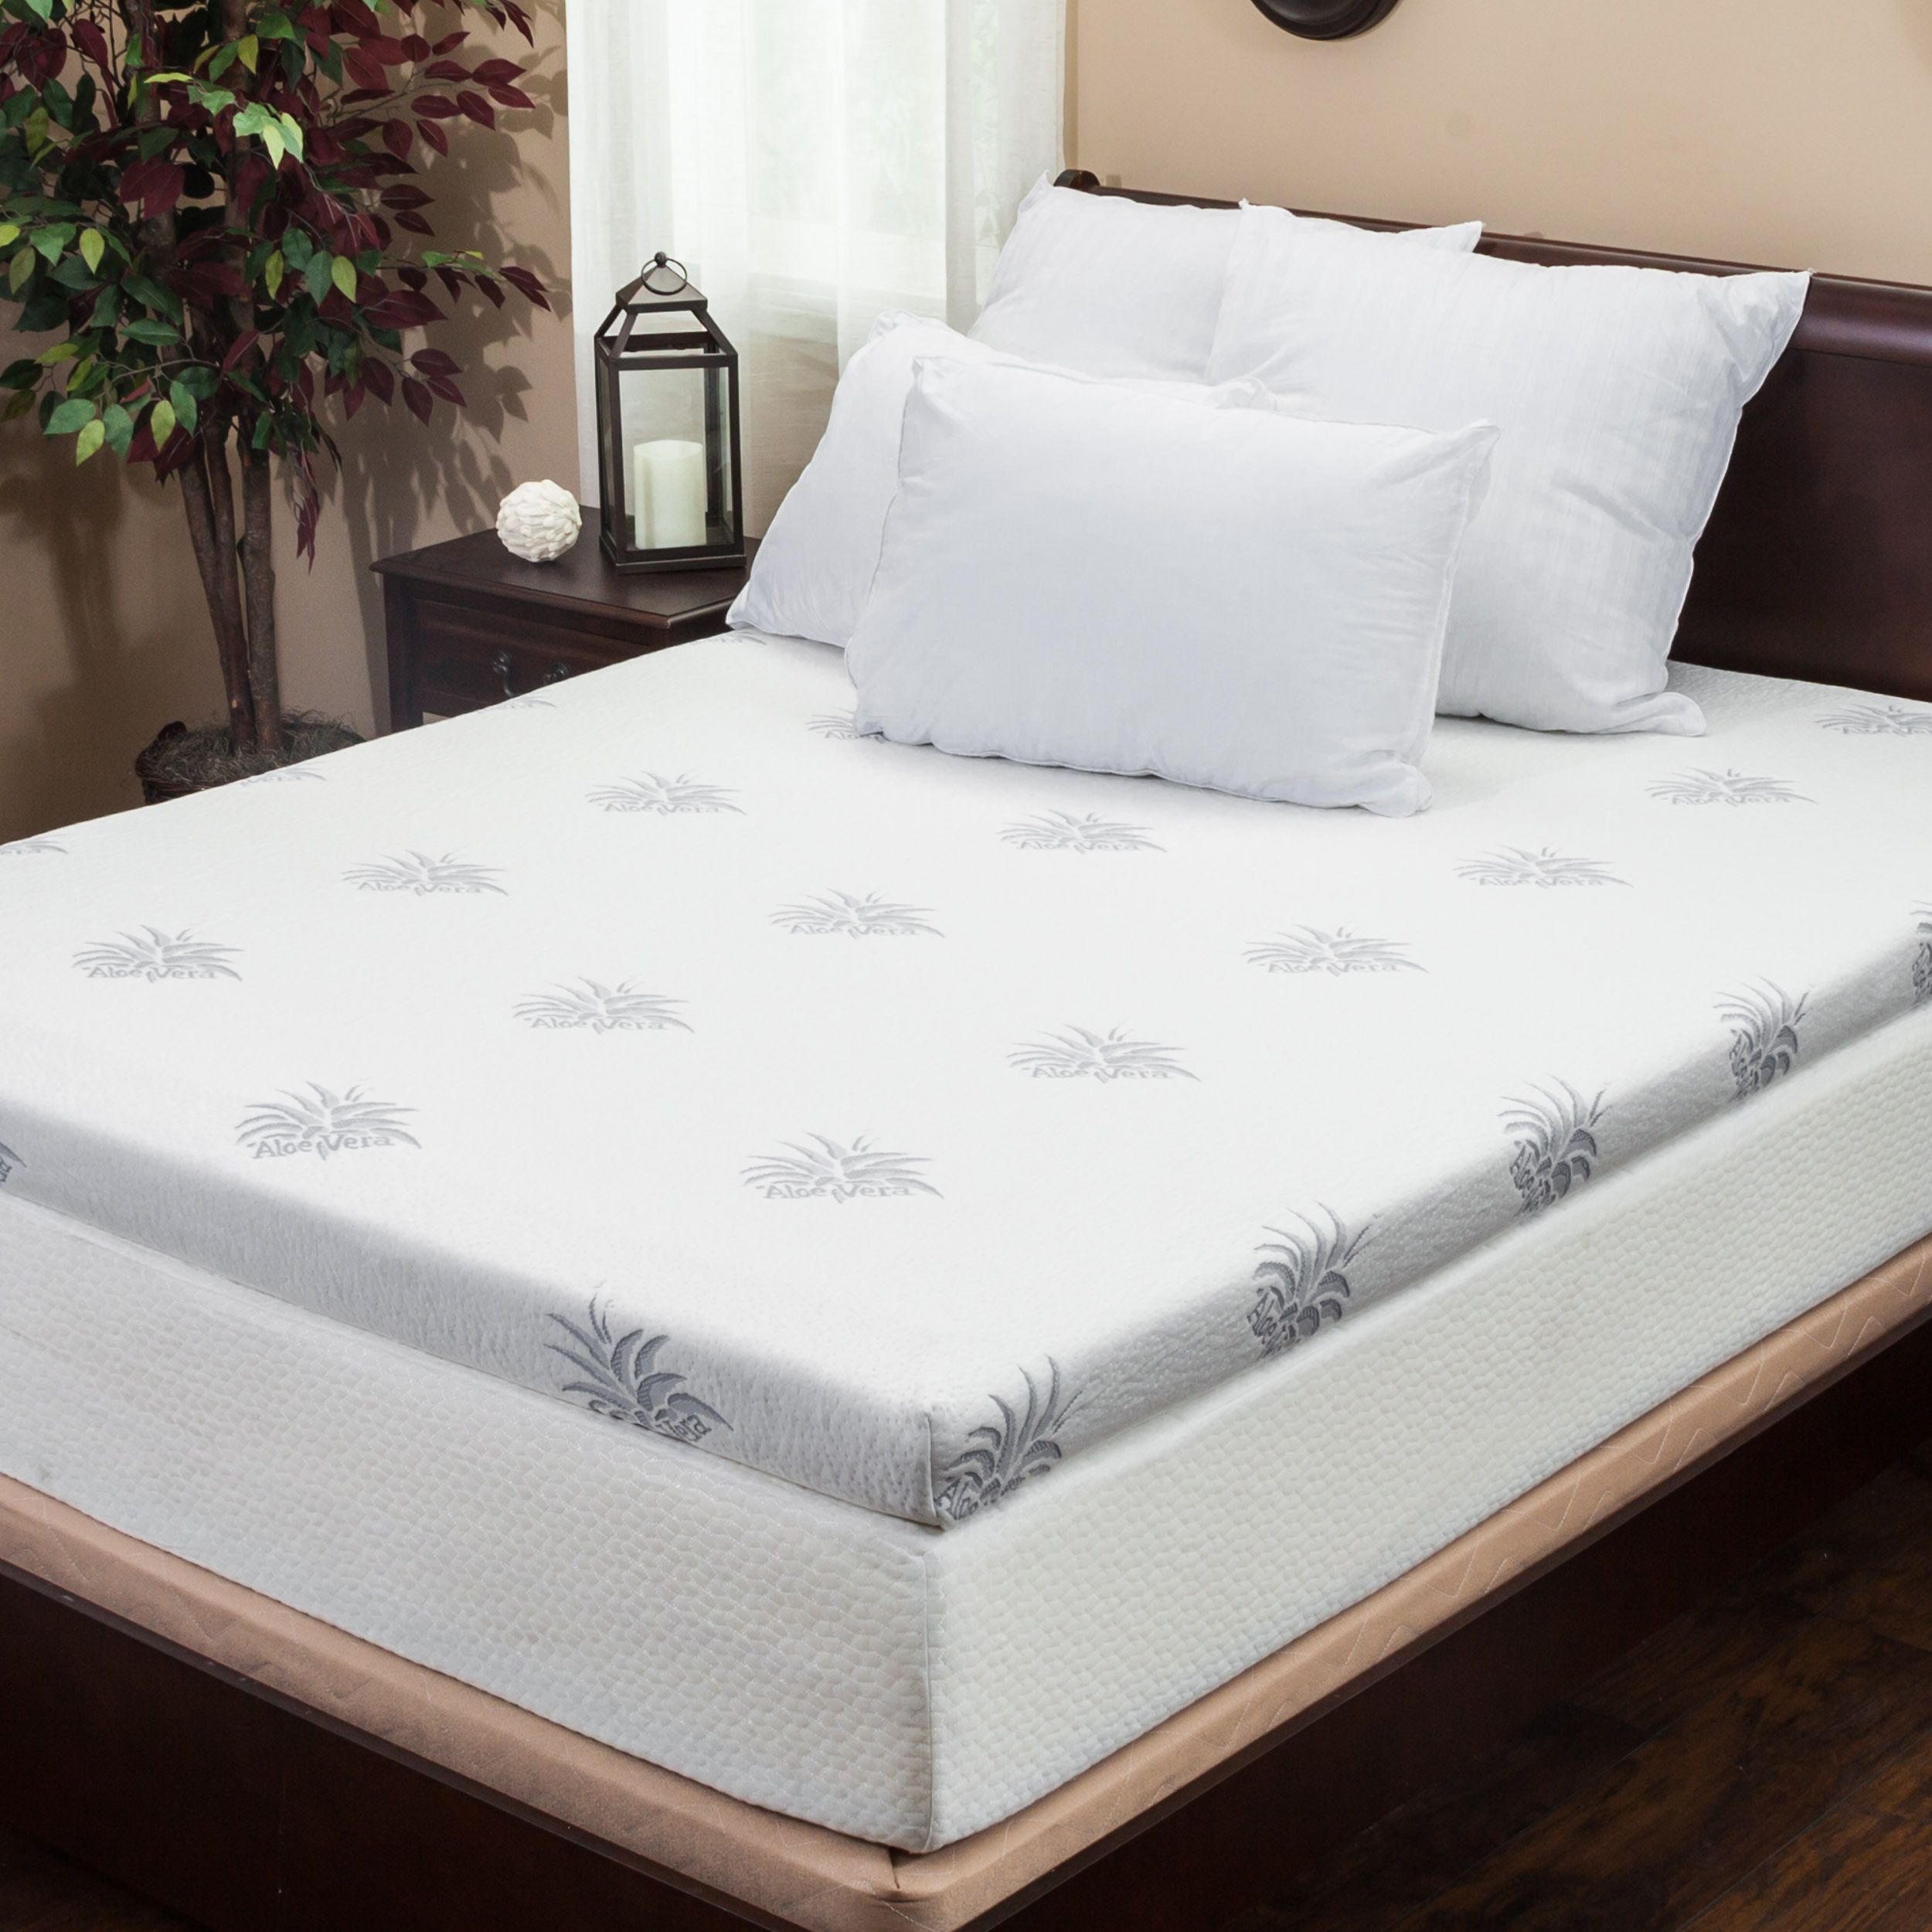 Christopher knight home 4inch duallayer queensize gel